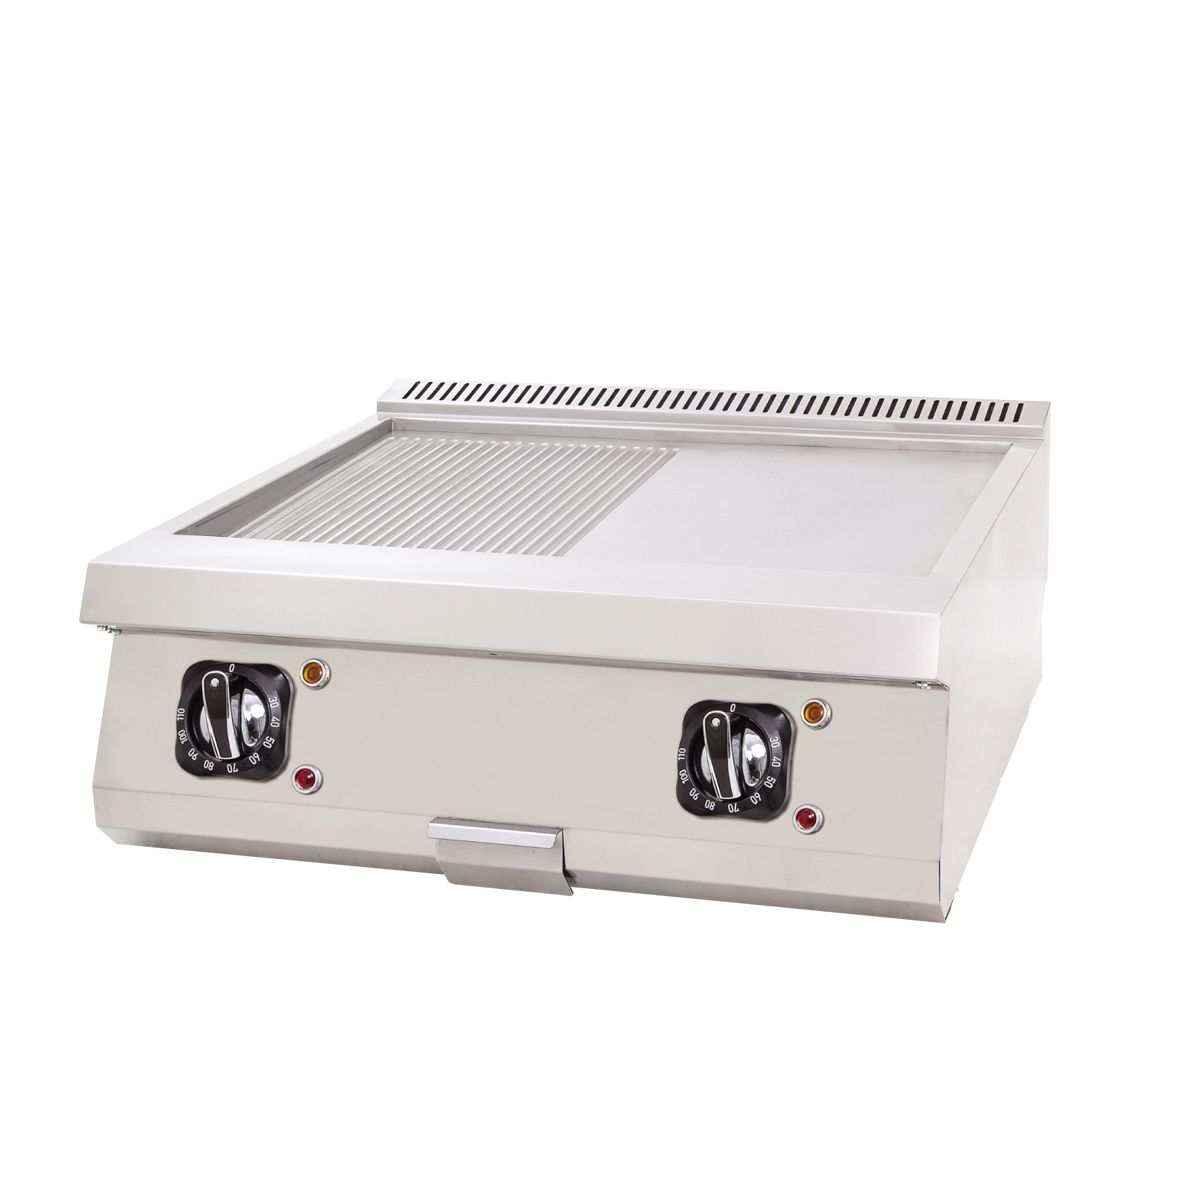 Electric Grill Flat+Grooved - 80x70